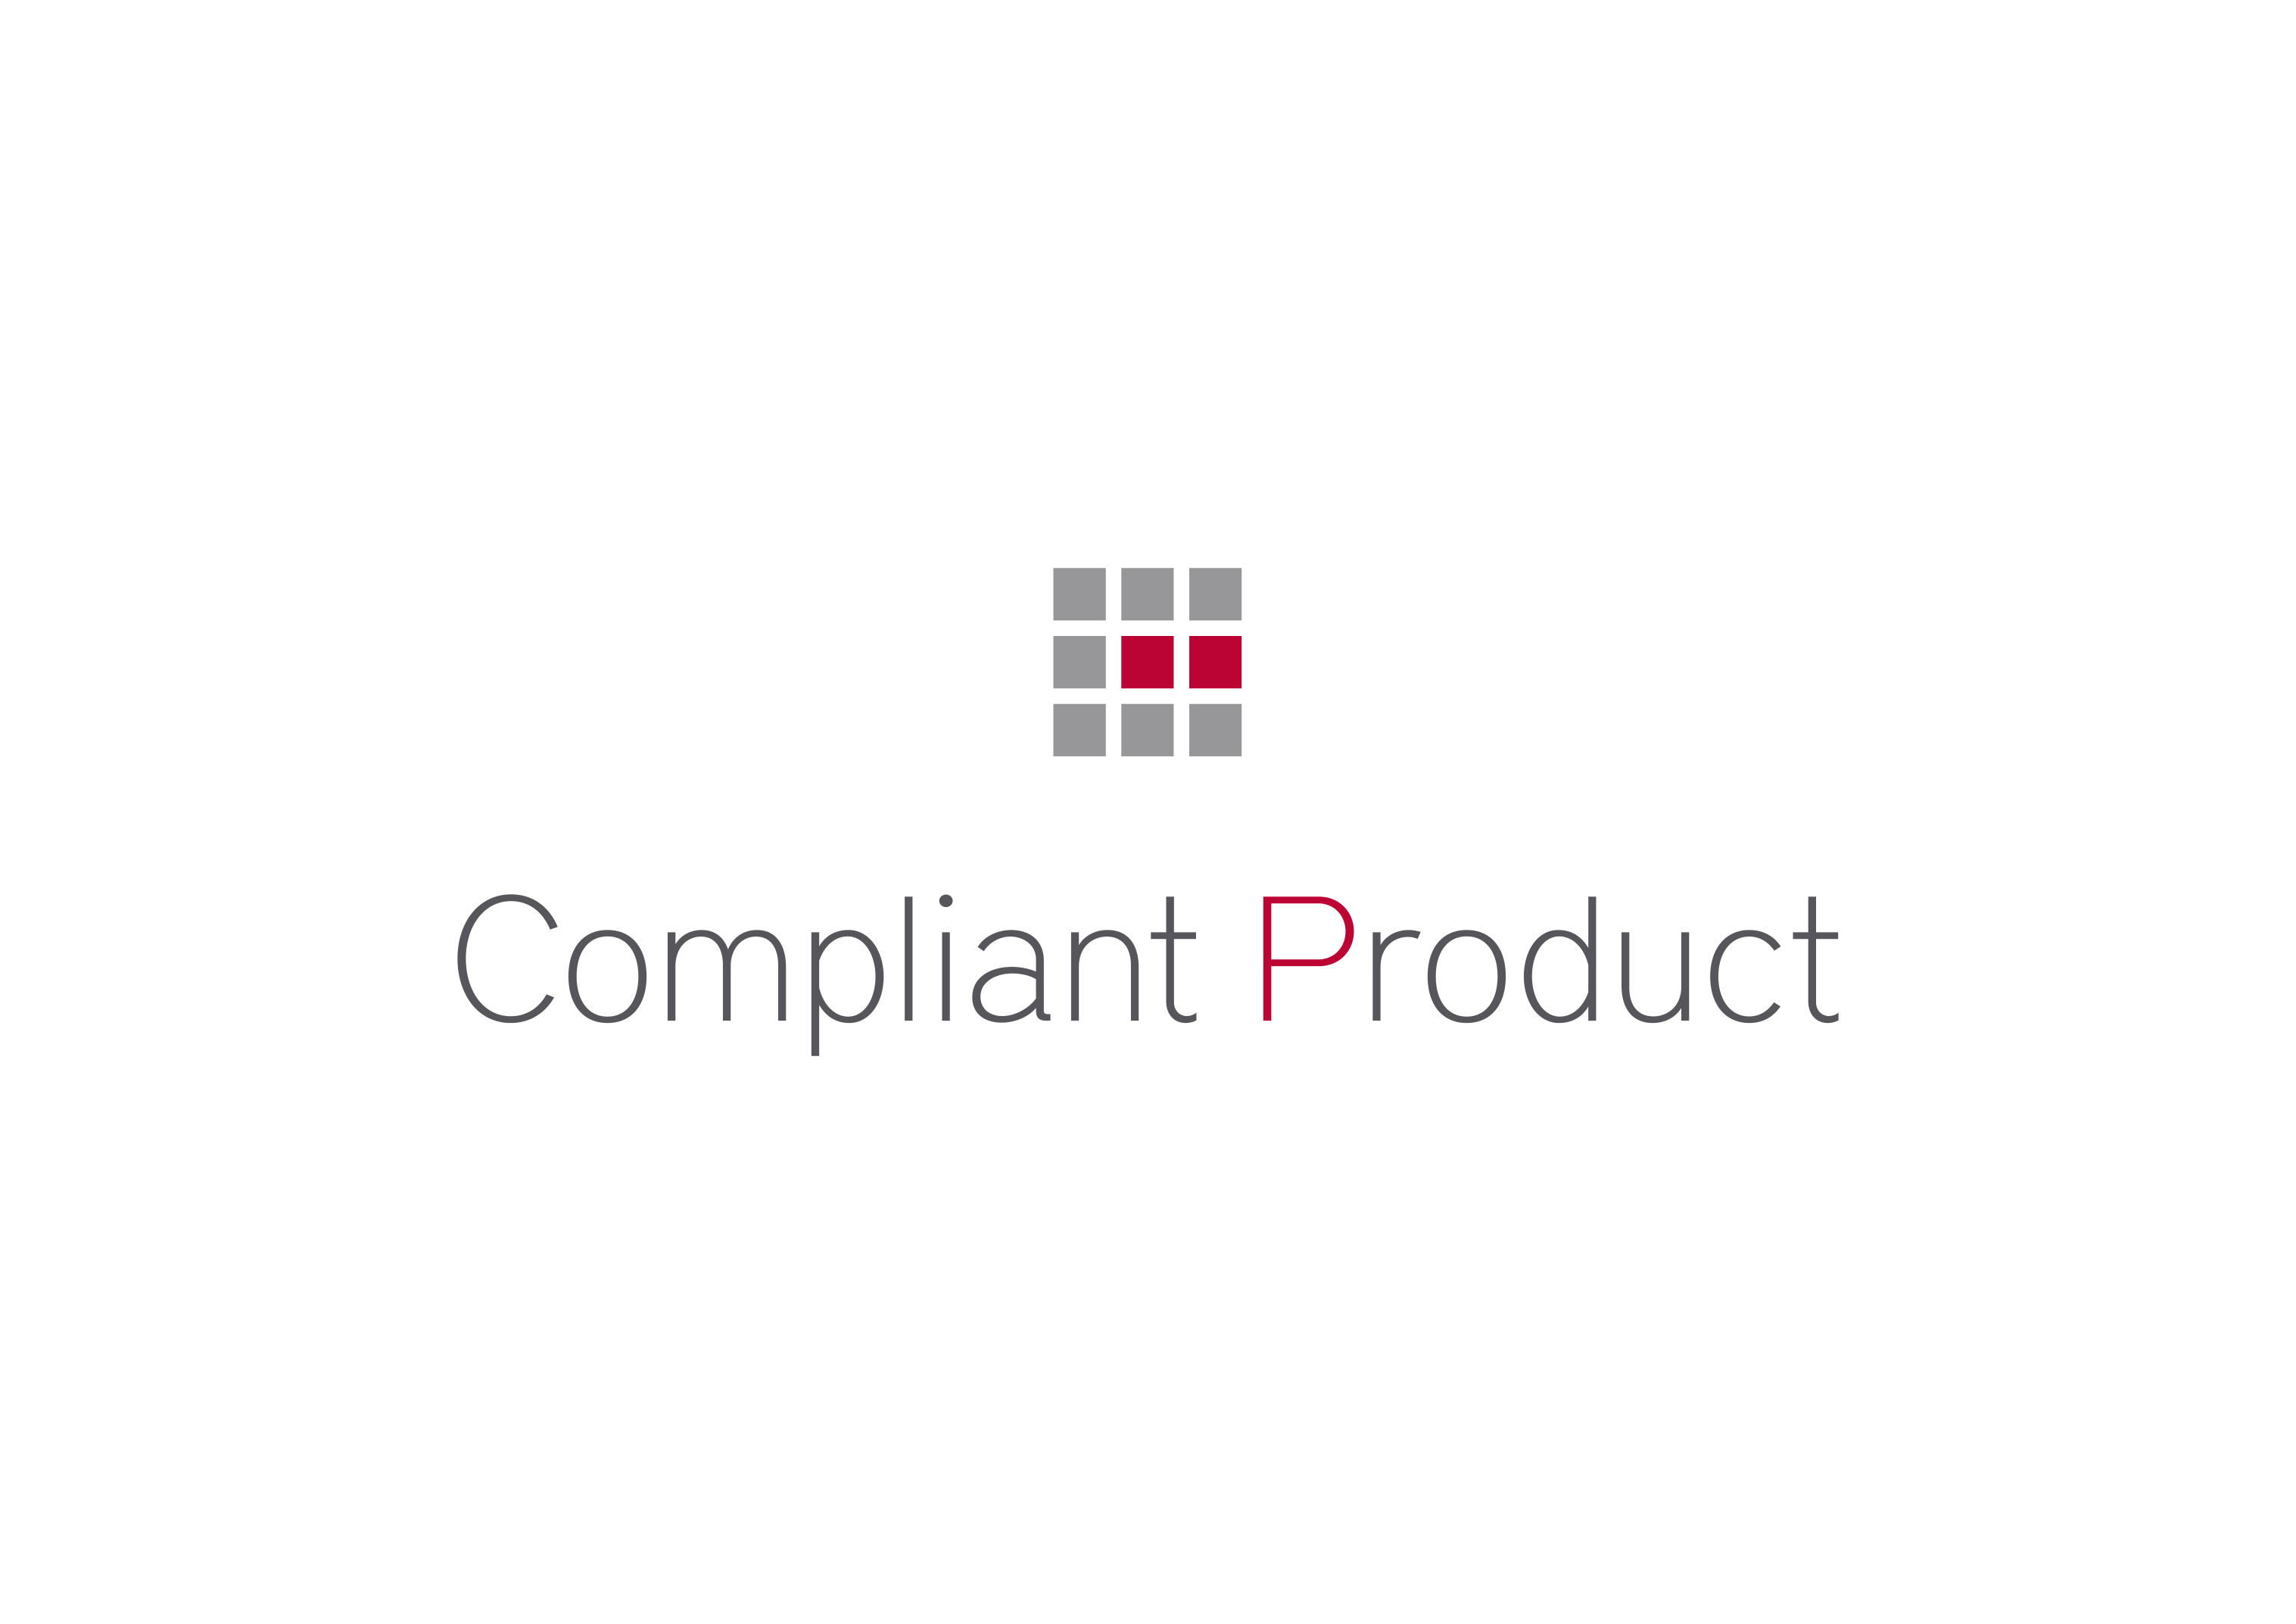 compliantproduct